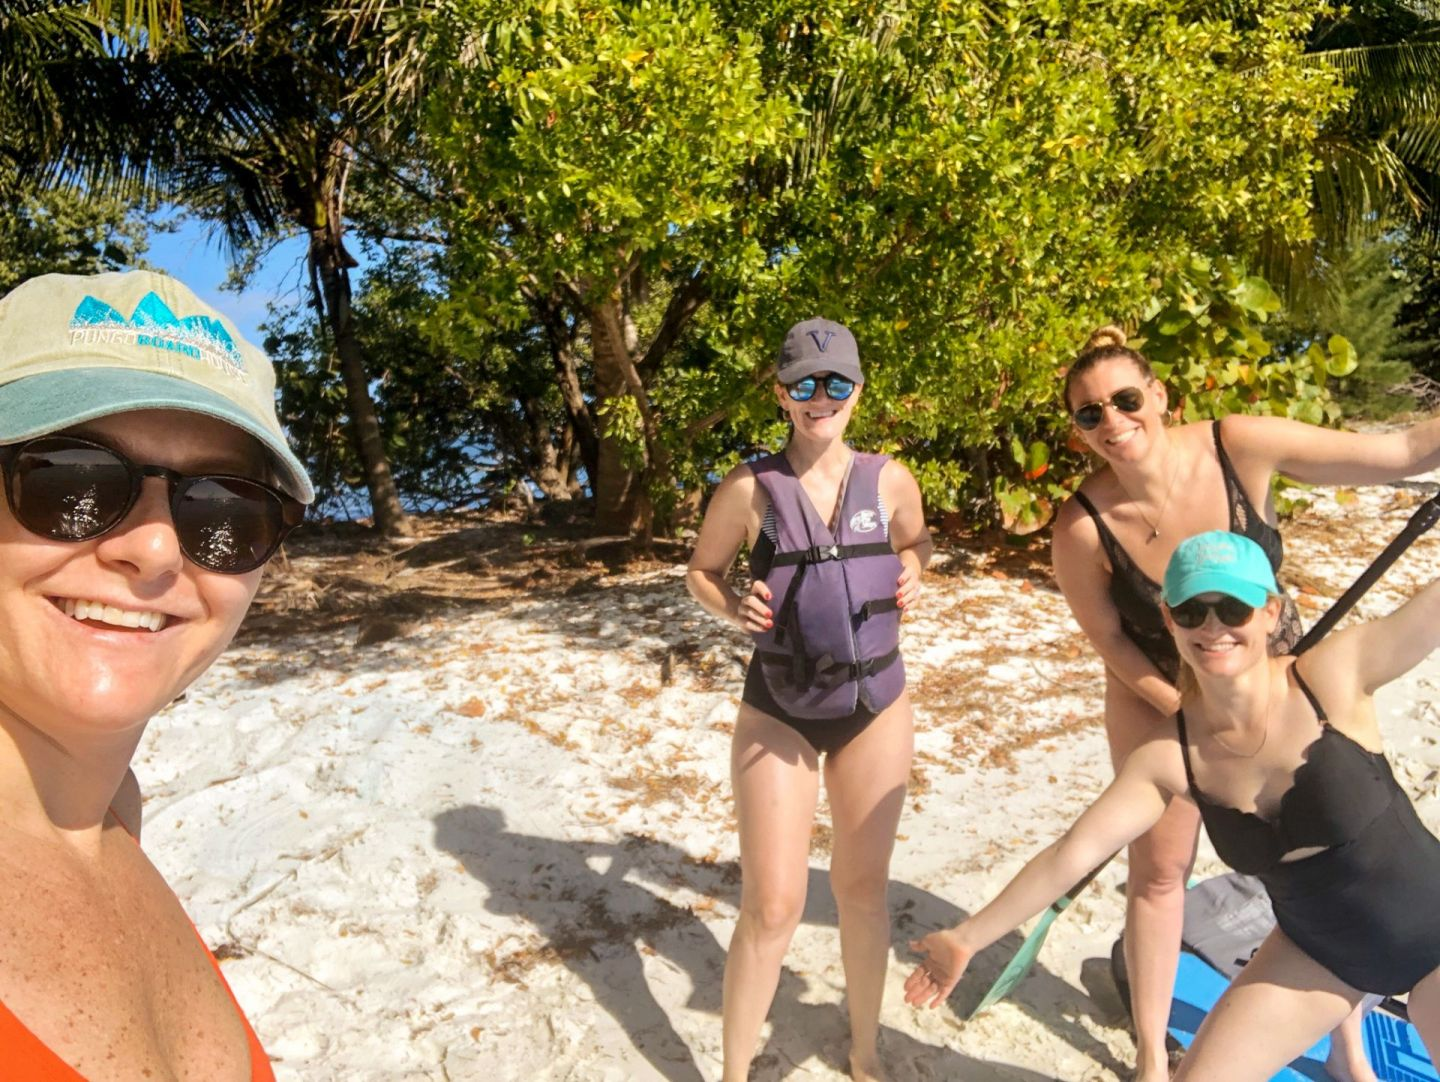 girls weekend in coconut grove miami - paddleboarding coconut grove - paddleboarding dinner key miami